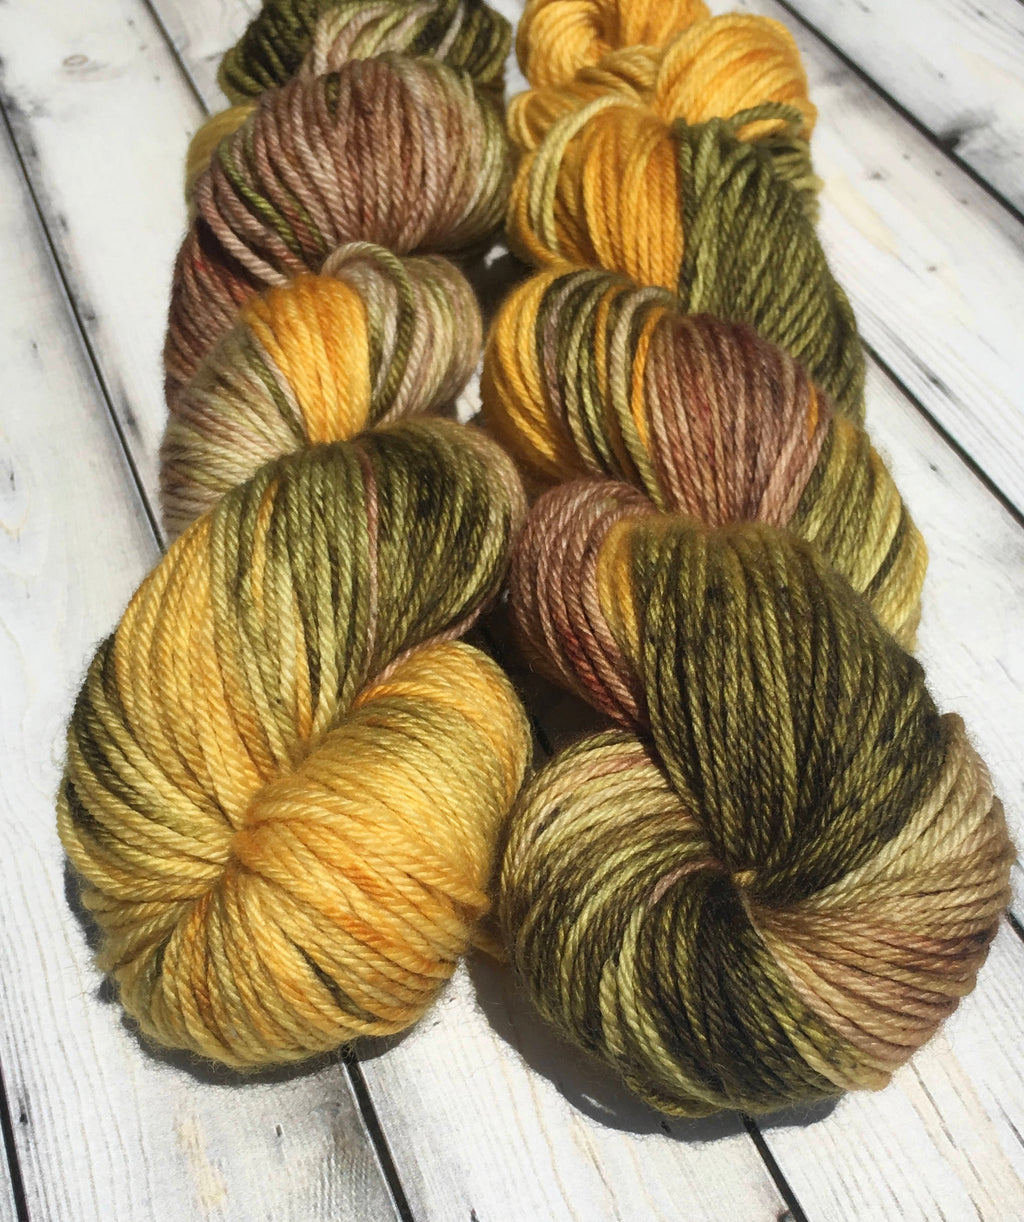 Worsted Weight Yarn - Allman Fall